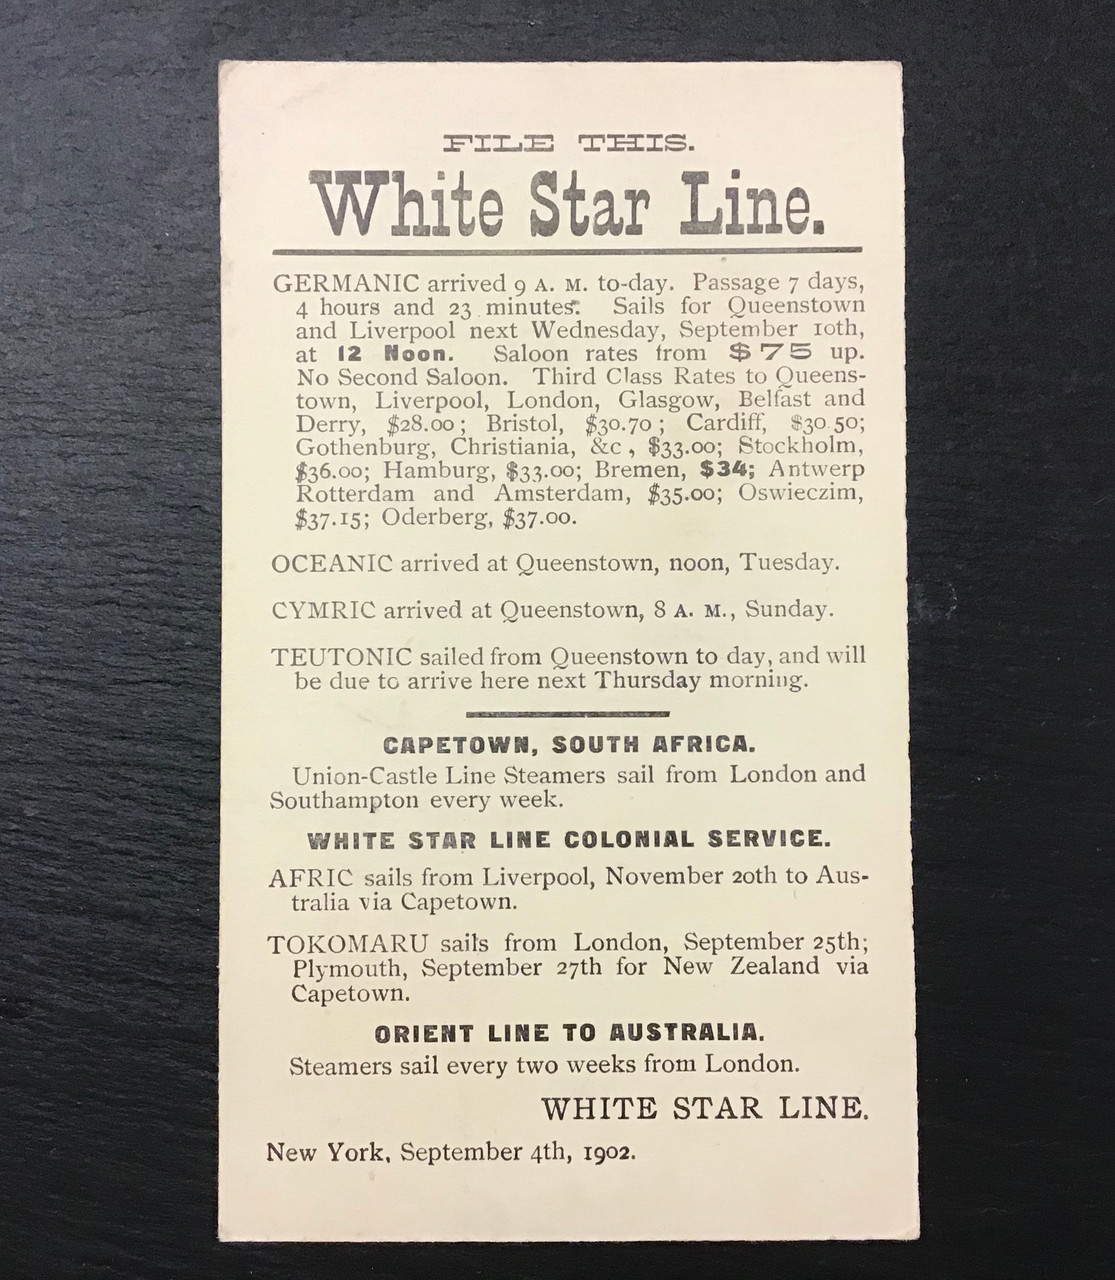 GD 1284 WHITE STAR LINE AGENTS NOTE CARD